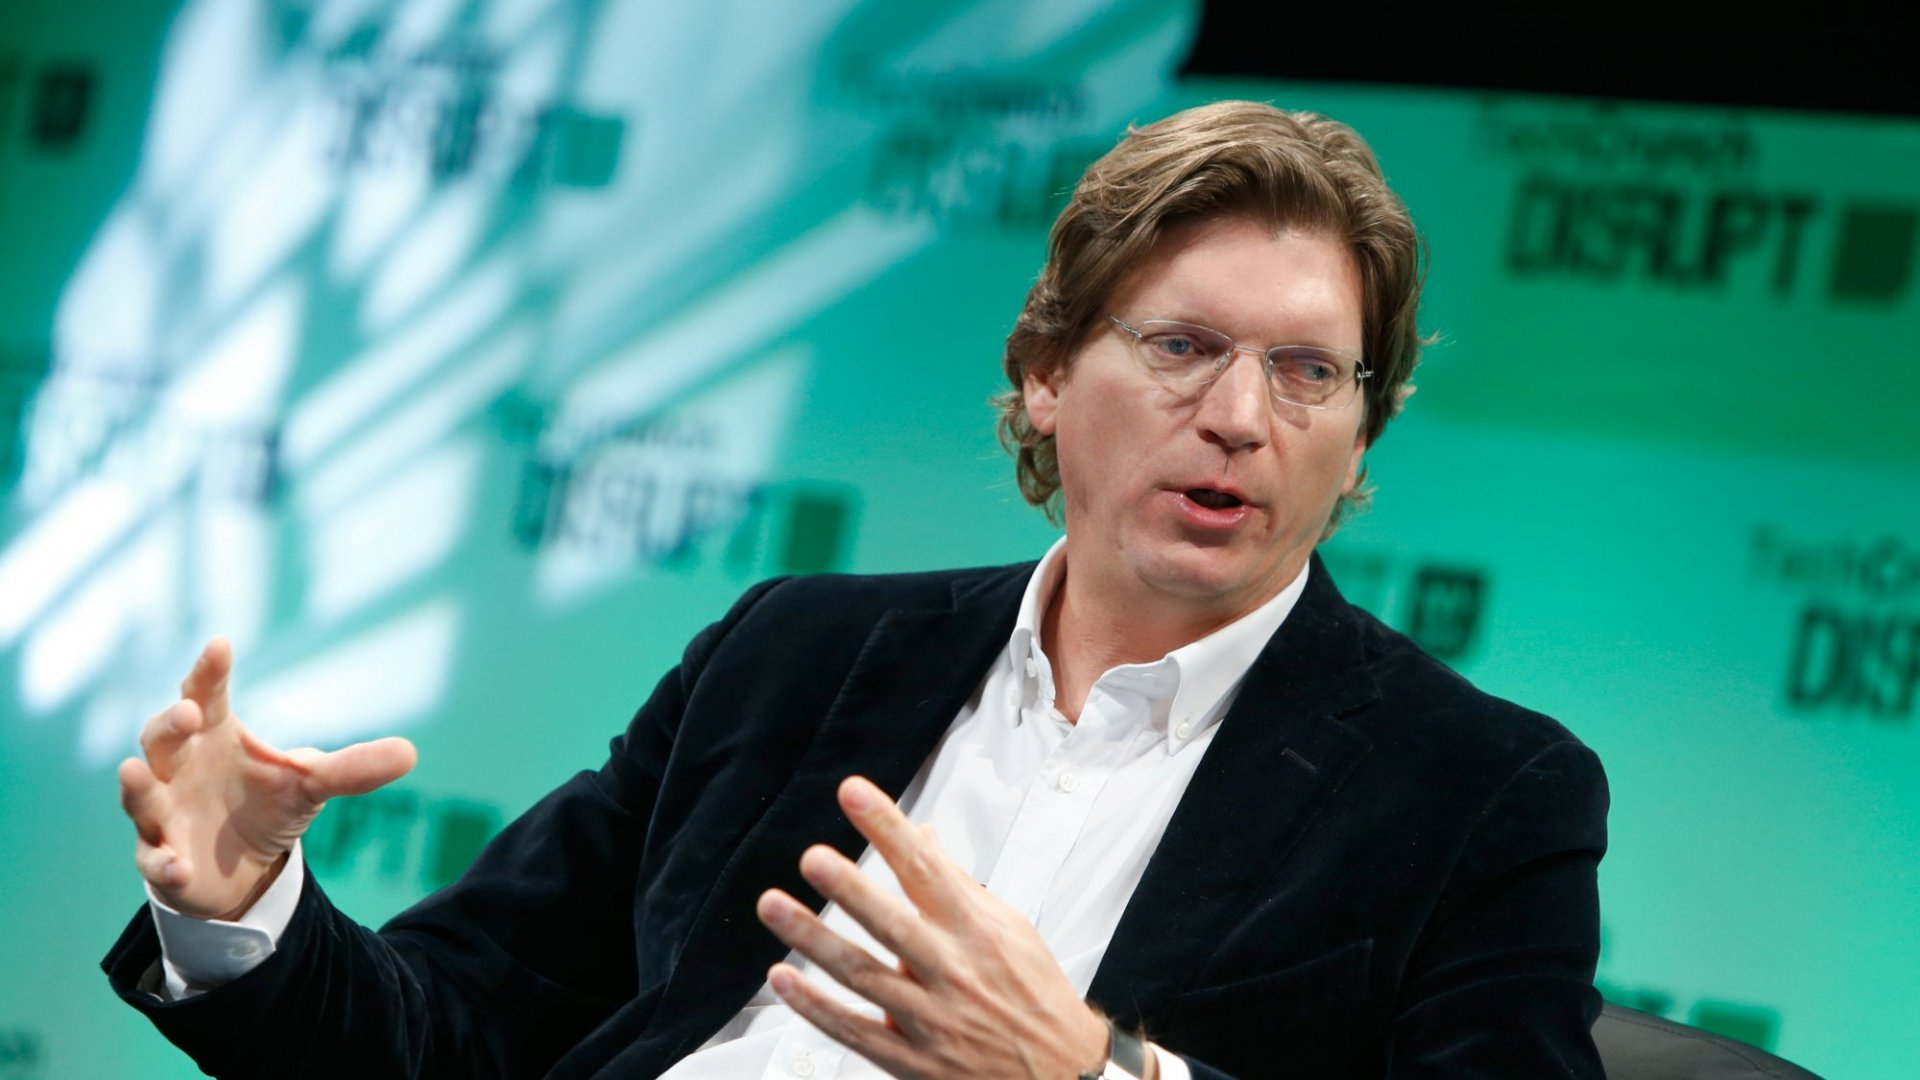 Niklas Zennstrom is a co-founder of Skype, and the co-founder and CEO of Atomico, a London VC firm.